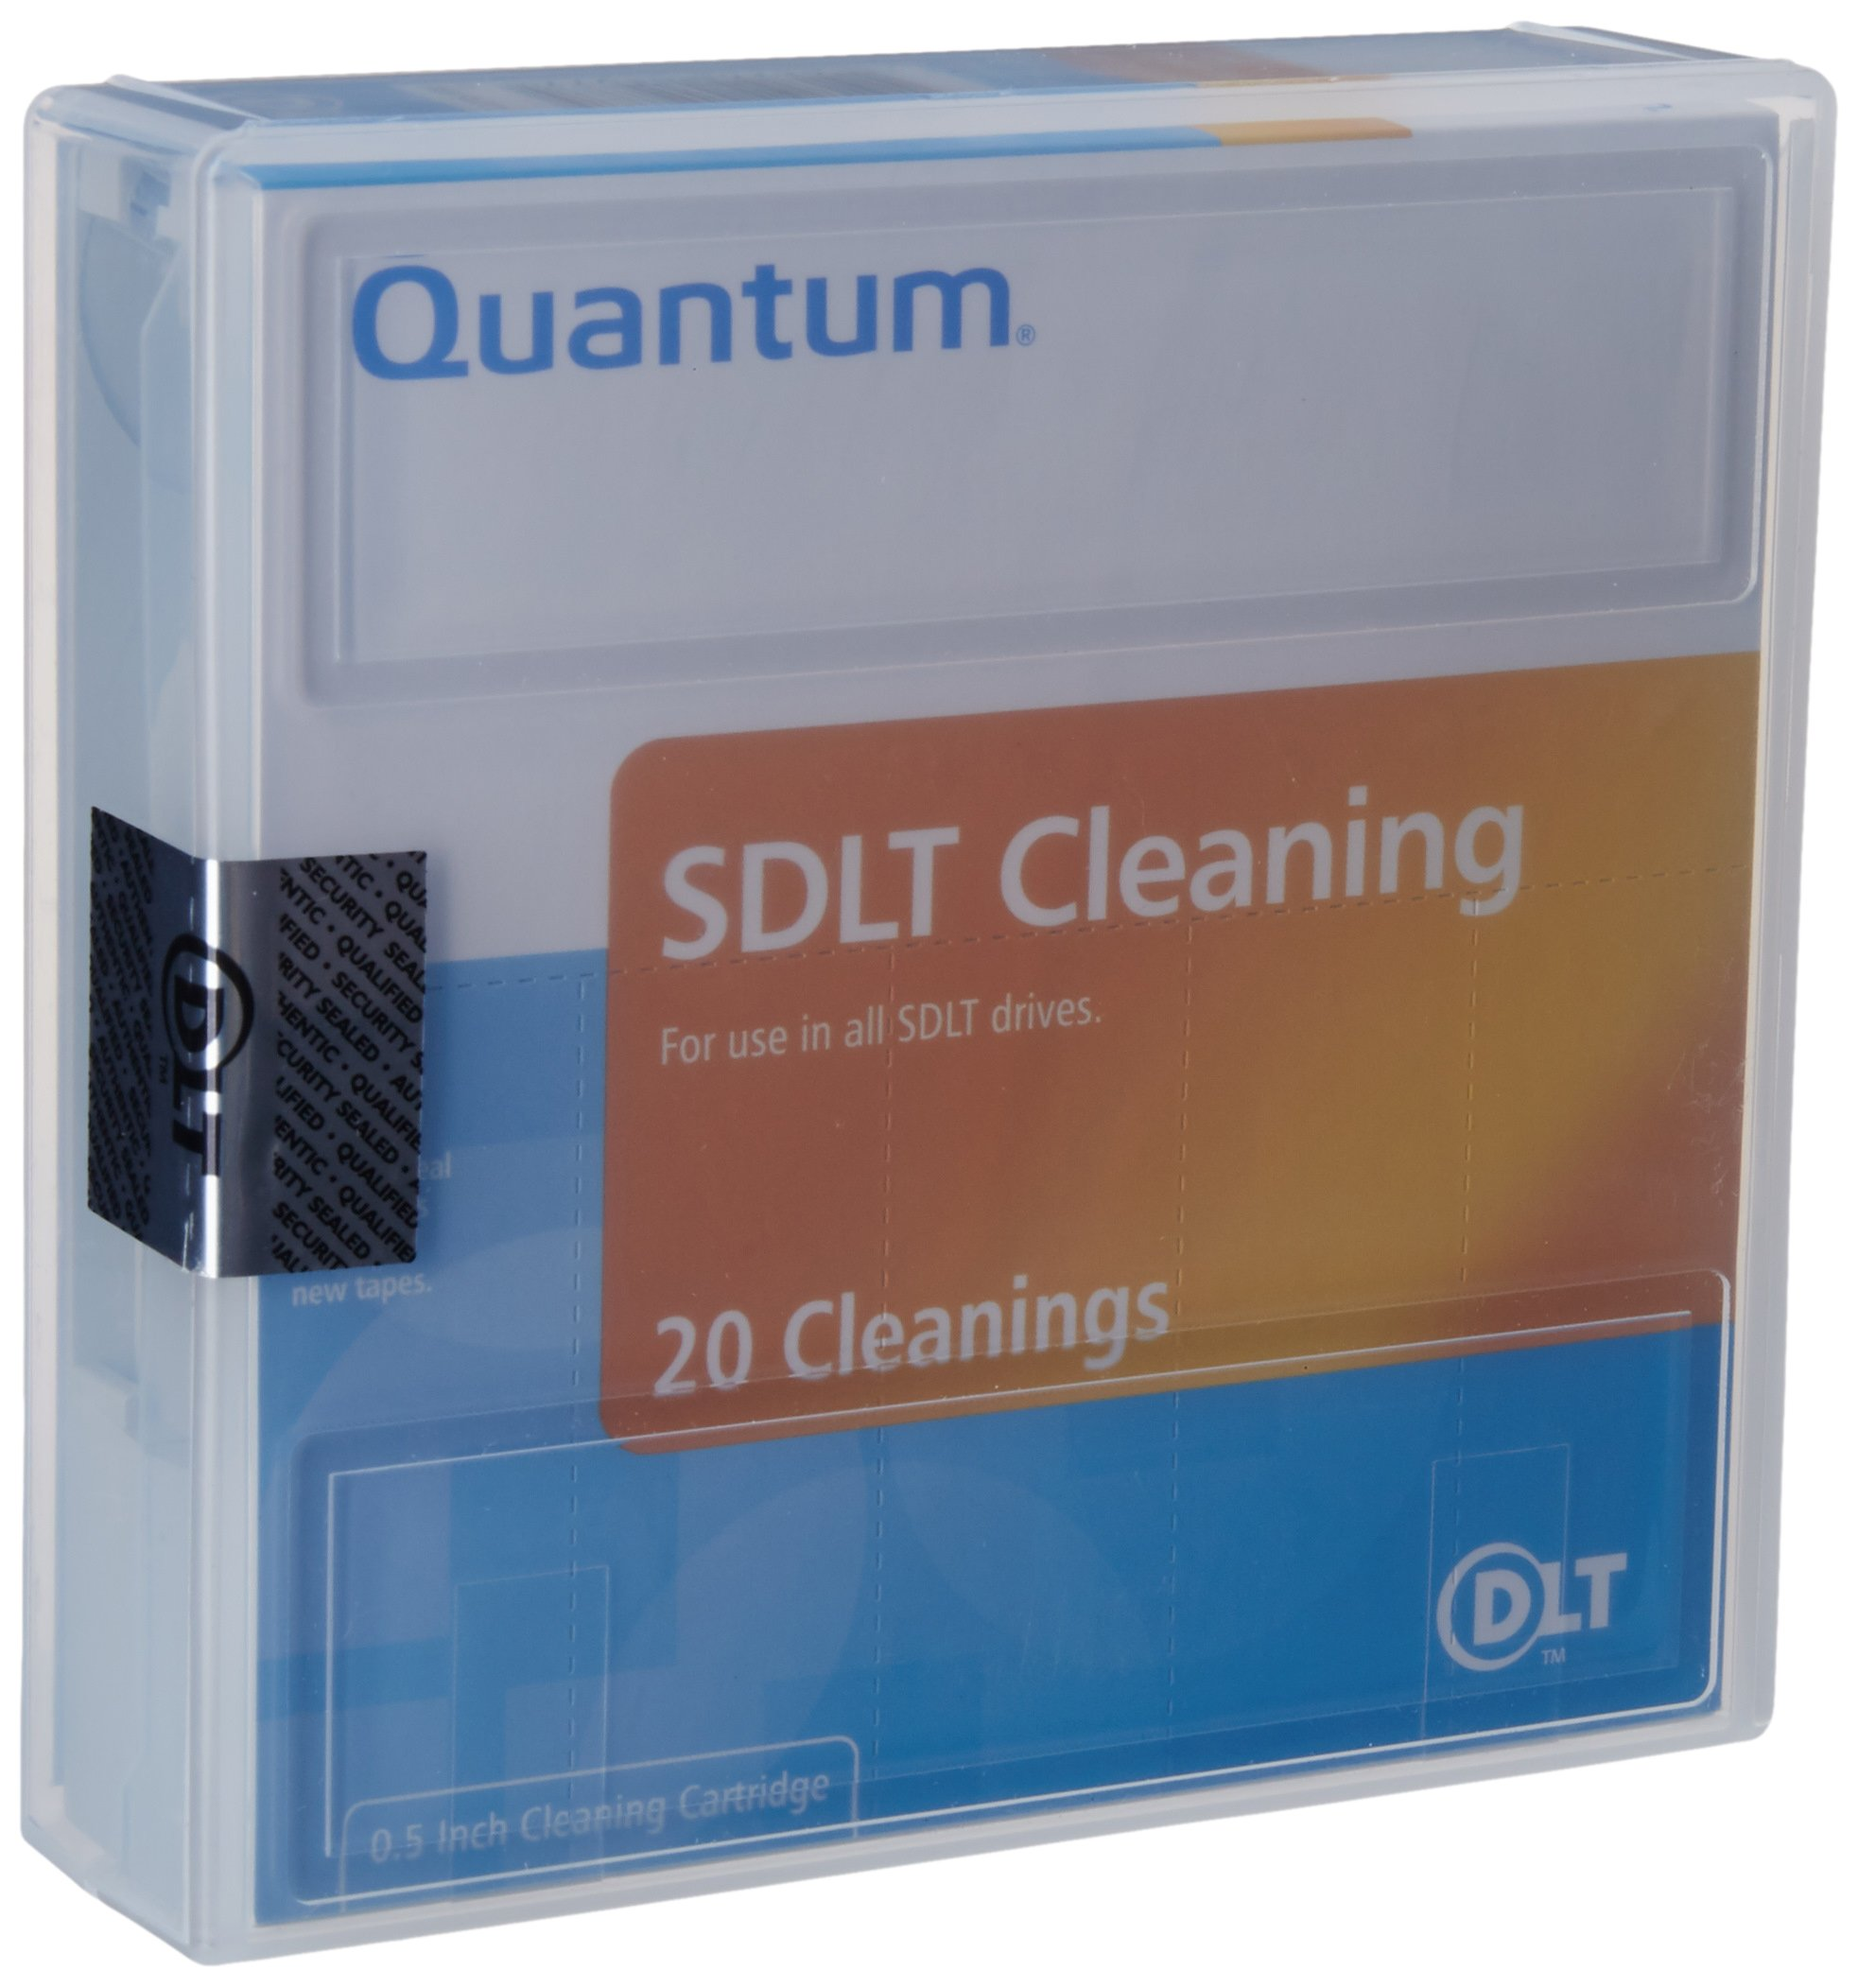 Cleaning Cartridge QUANTUM SDLT 20 Usos